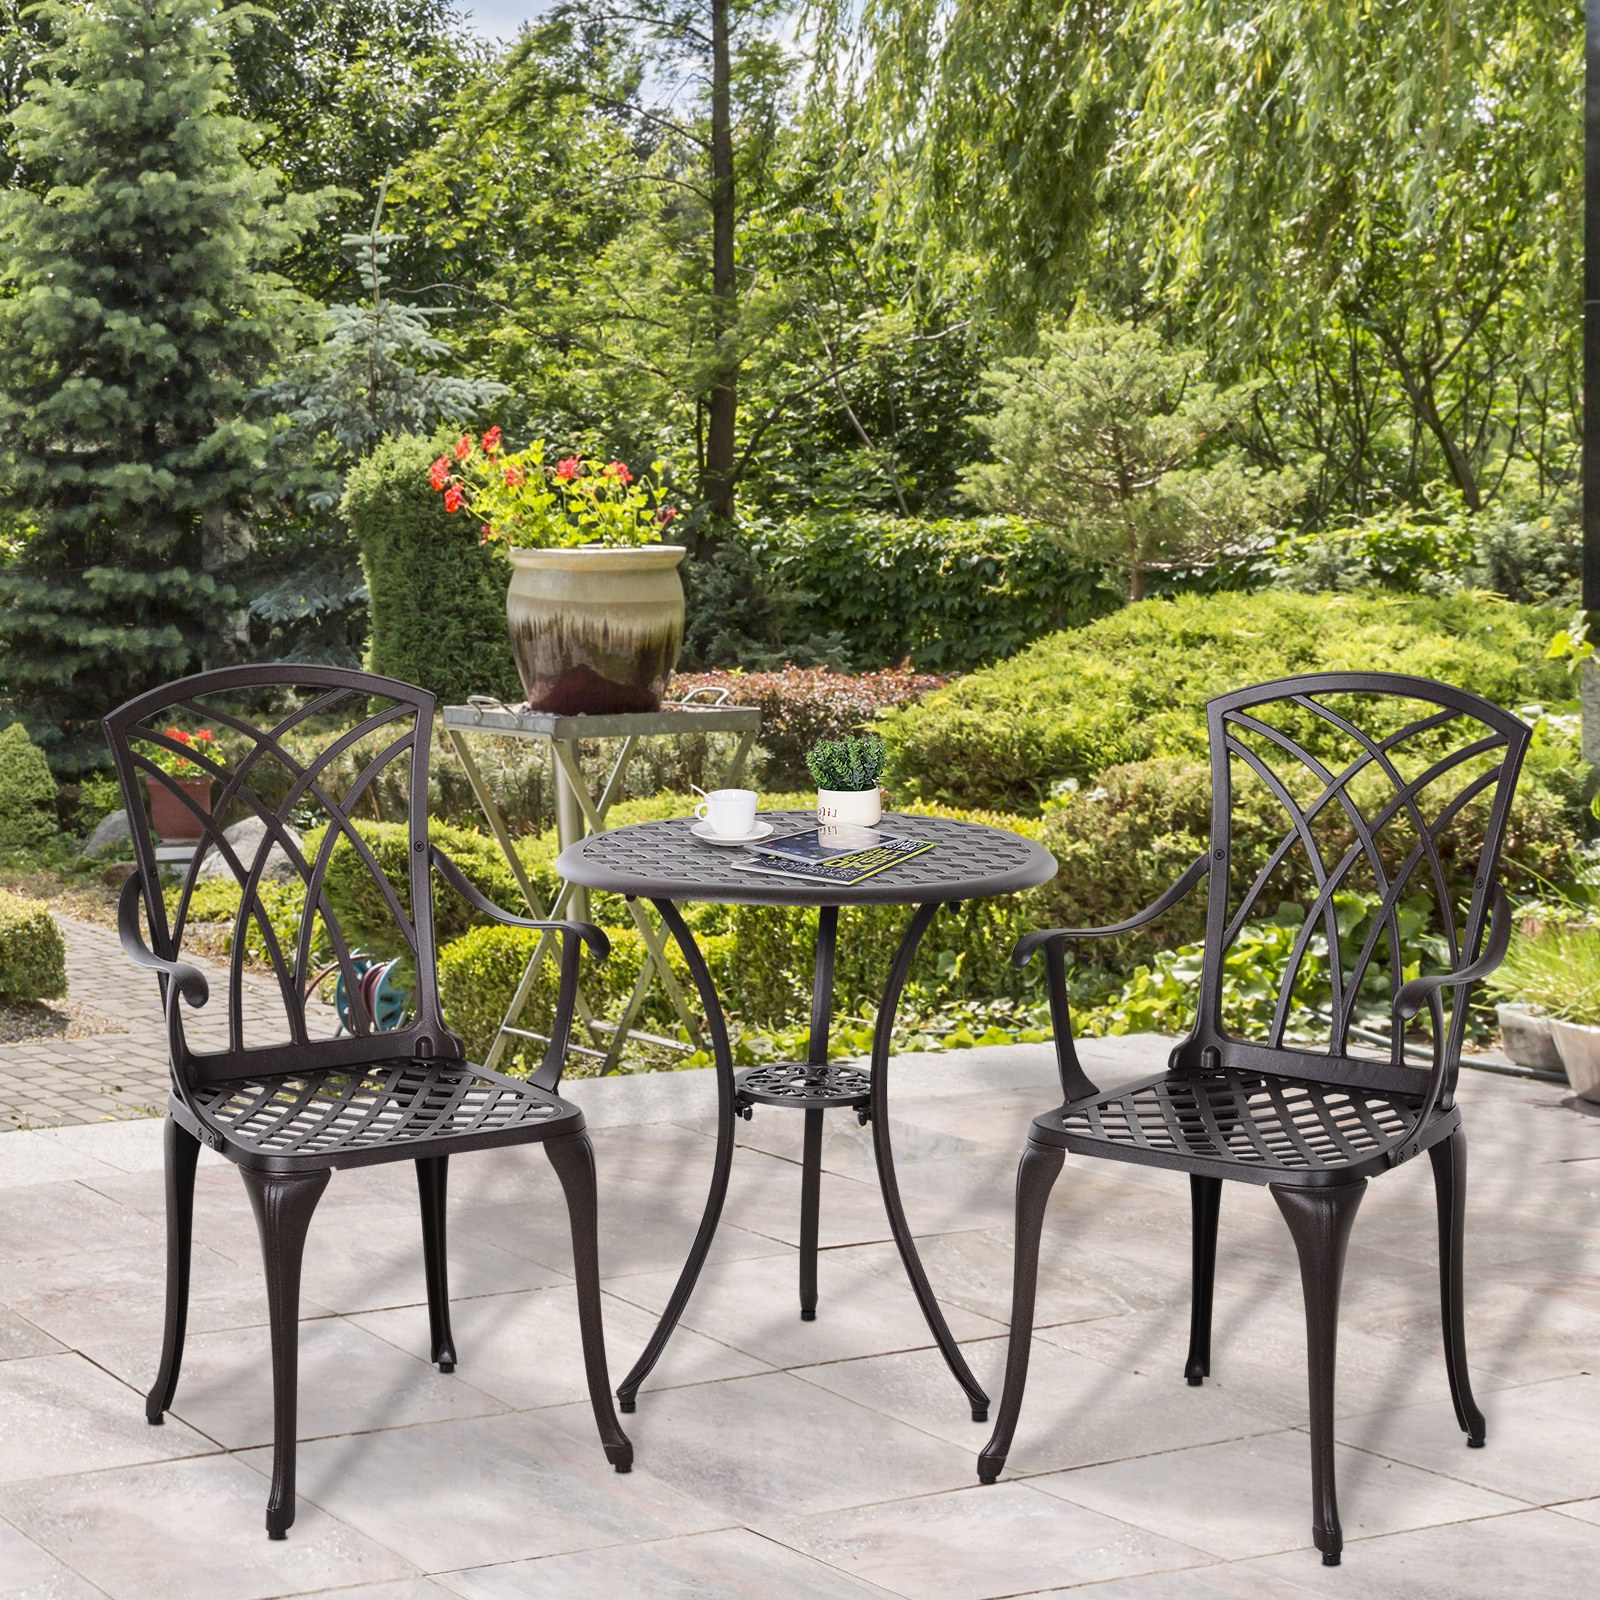 Outsunny 3 PC Coffee Table Chairs Outdoor Garden Furniture ...